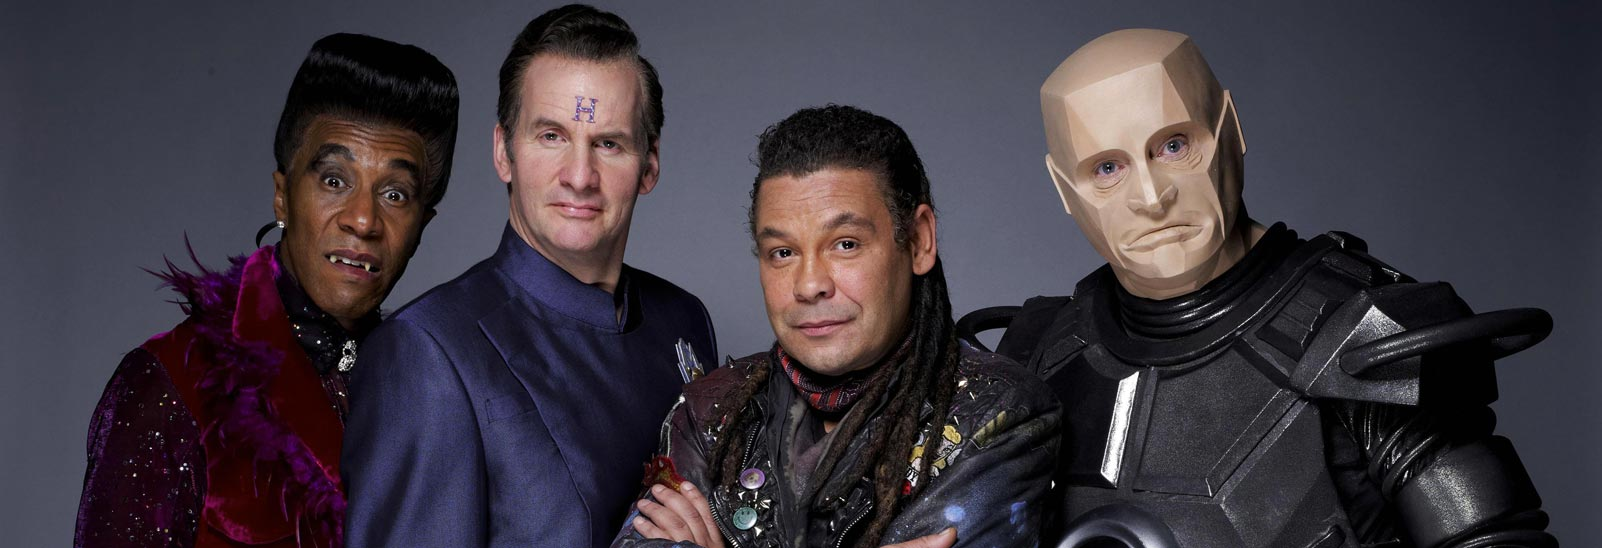 Watch red dwarf season 1 episode 1: the end on dave | tv guide.